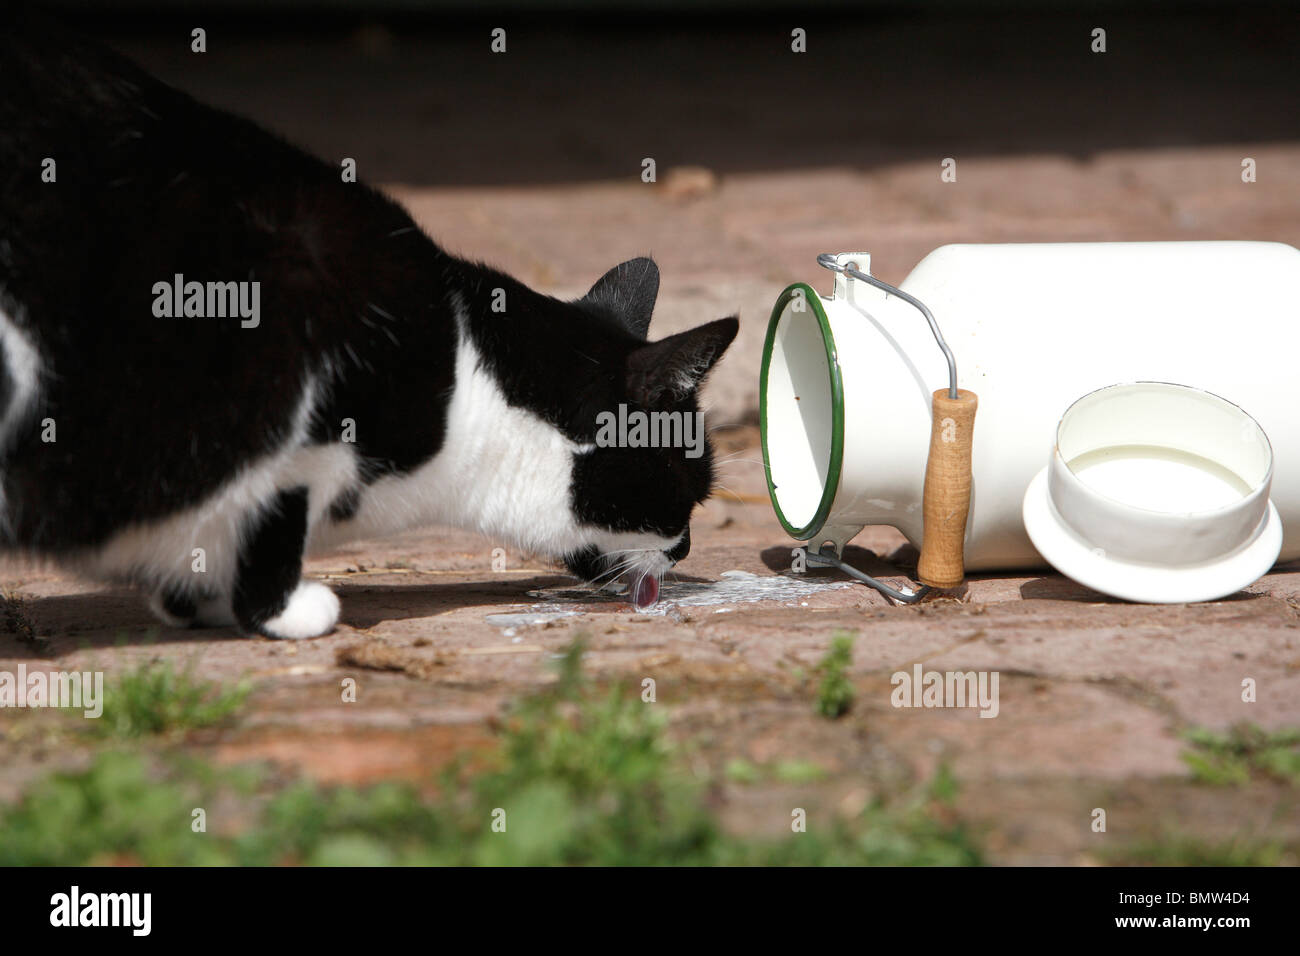 domestic cat, house cat, European Shorthair (Felis silvestris f. catus), licking milk from a toppled mik-can, Germany - Stock Image